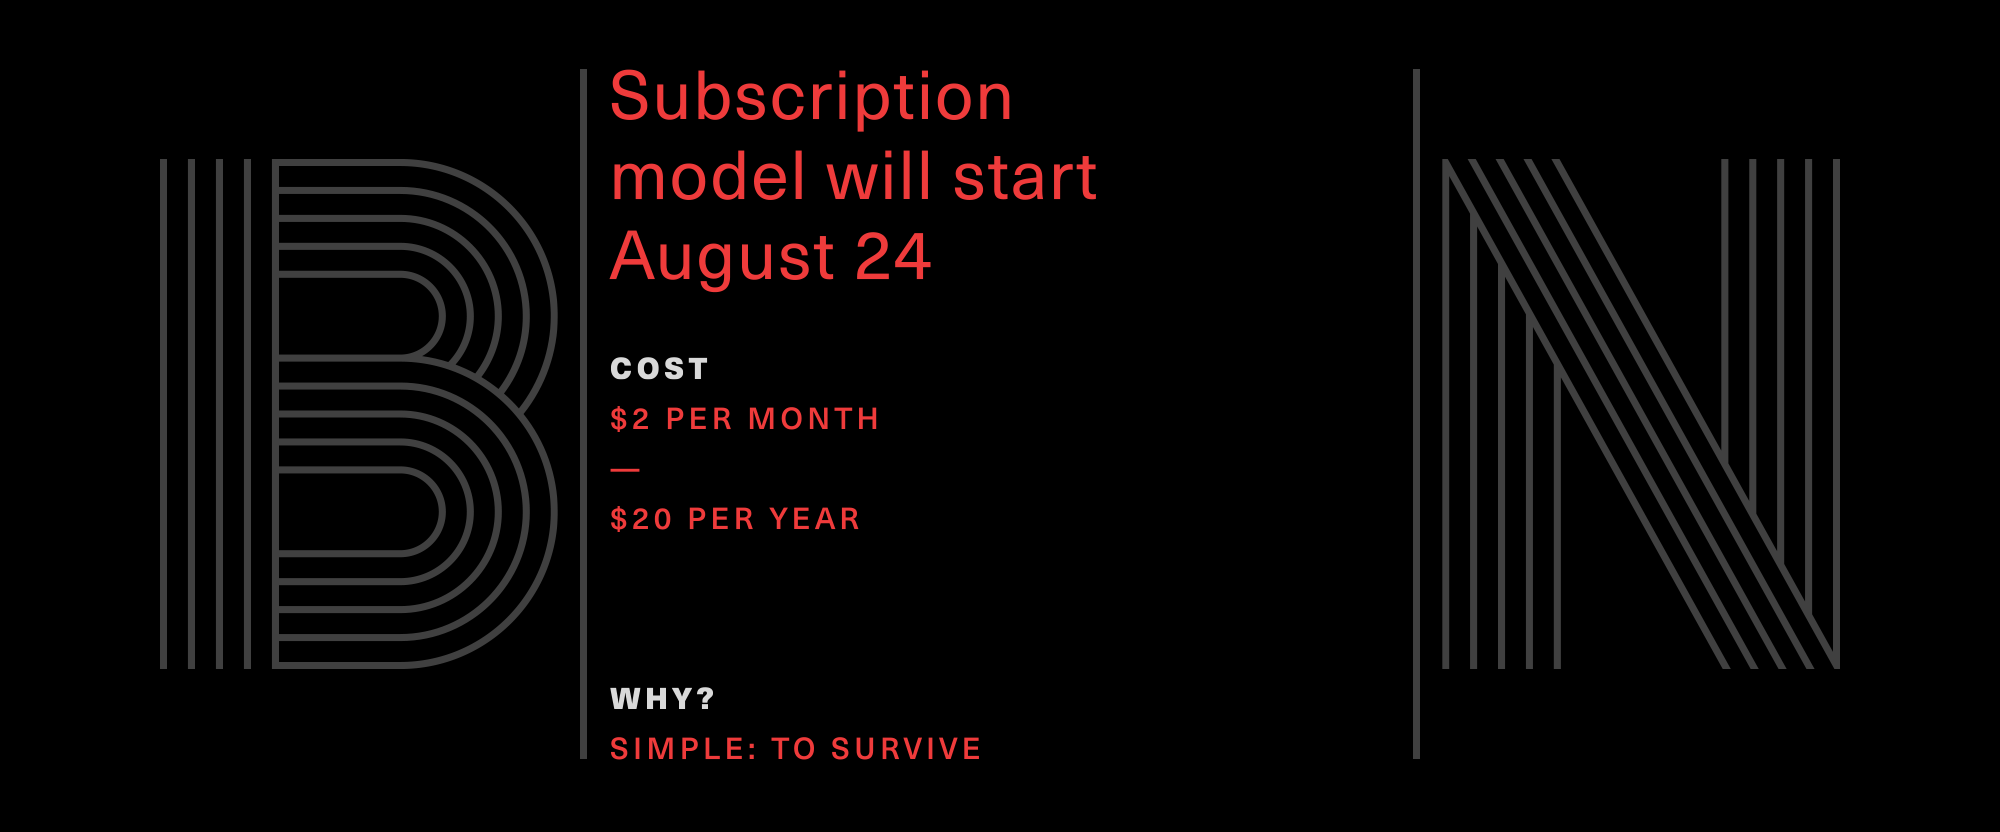 Brand New will Shift to Subscription Model